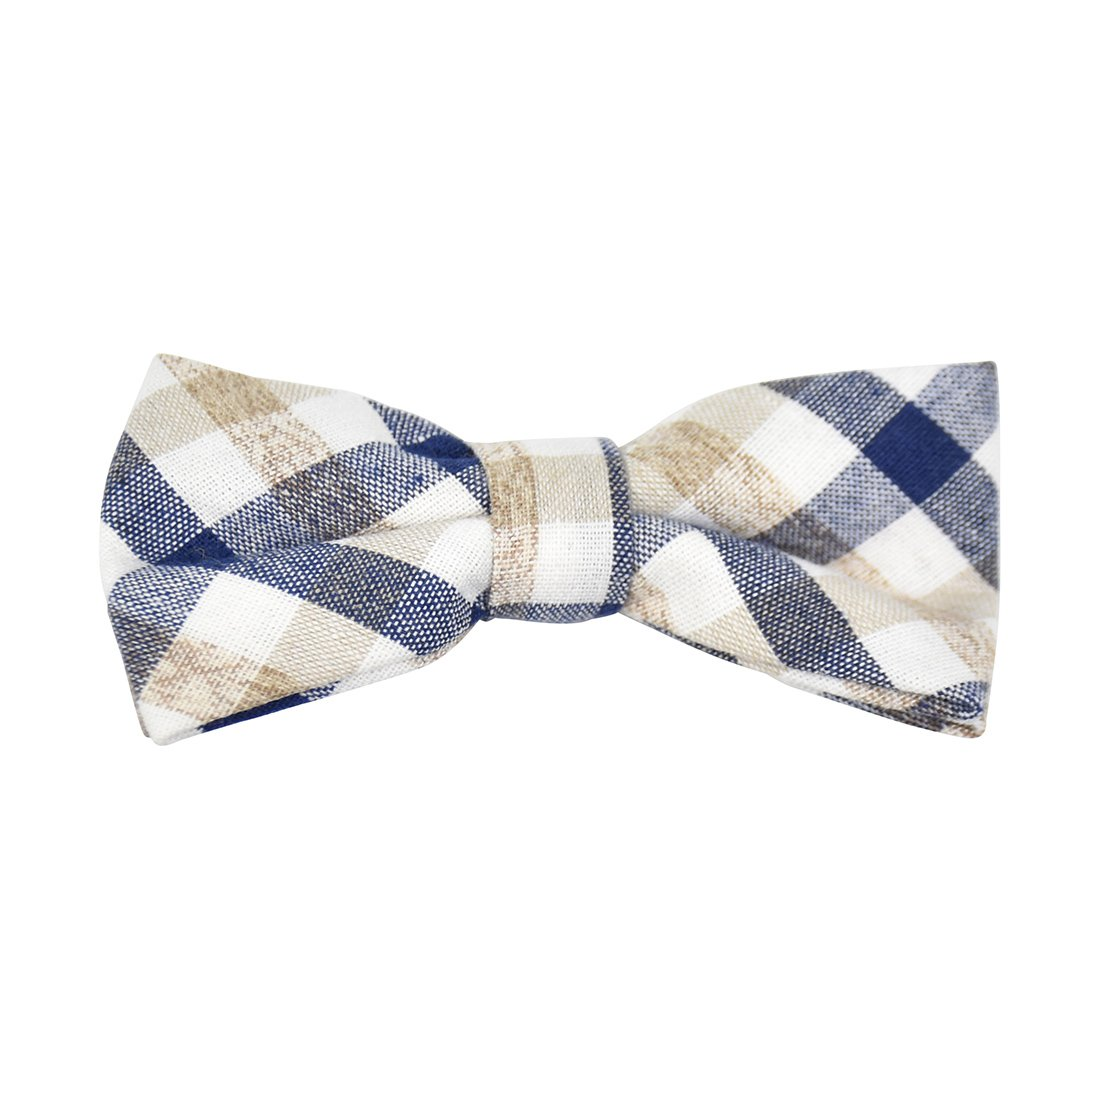 Checkered Cotton Bow Tie with Metal Clip DaCee Designs Accessories AGBT0031CX